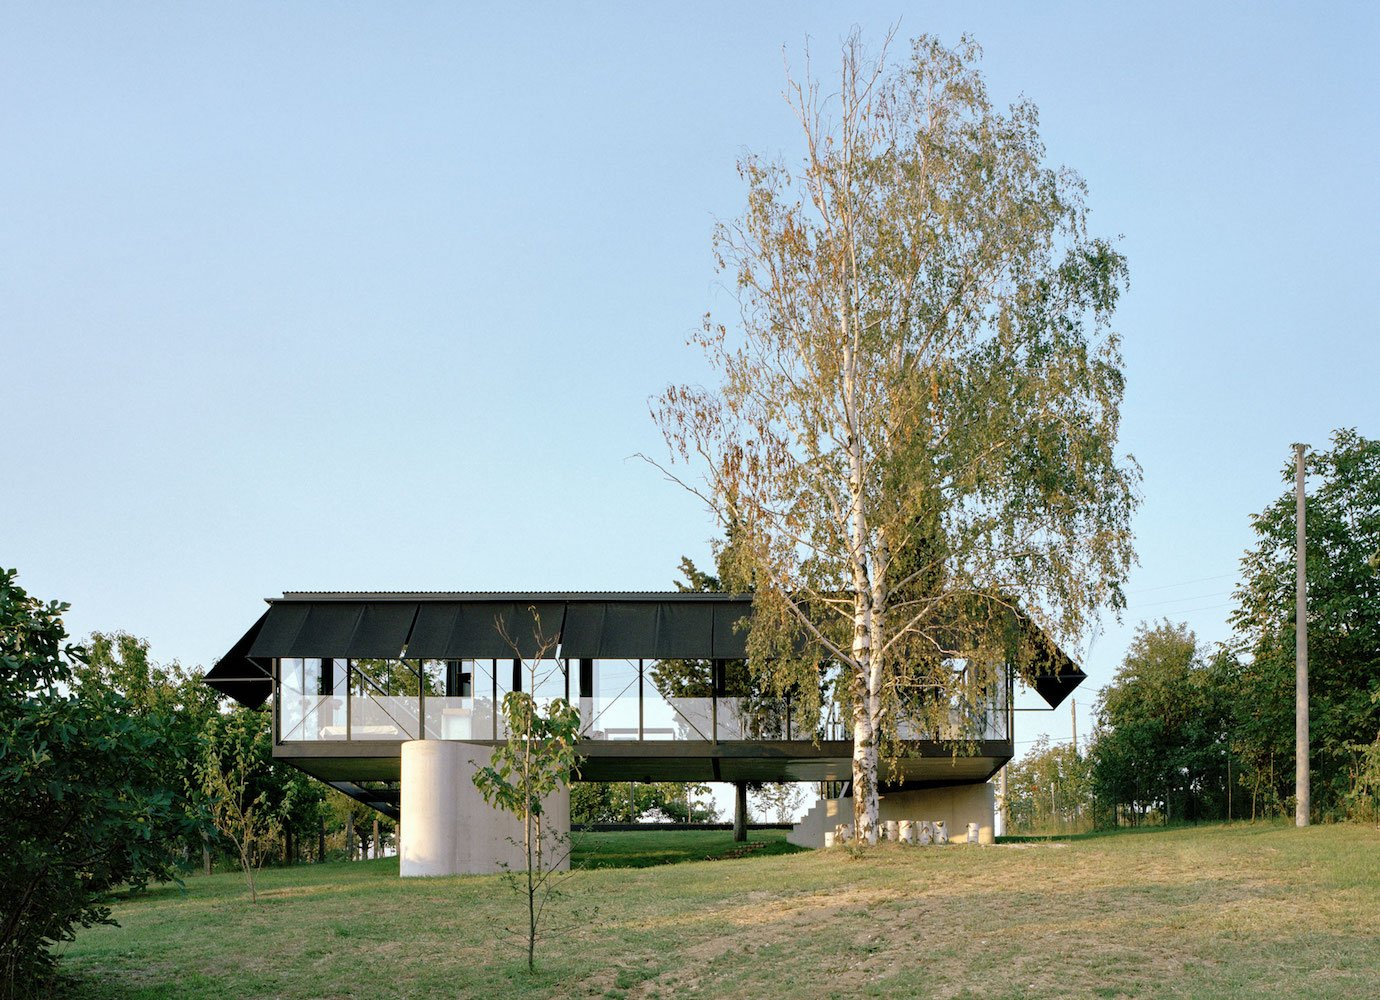 Dacha on wheels: the wooden summer home that travels with you